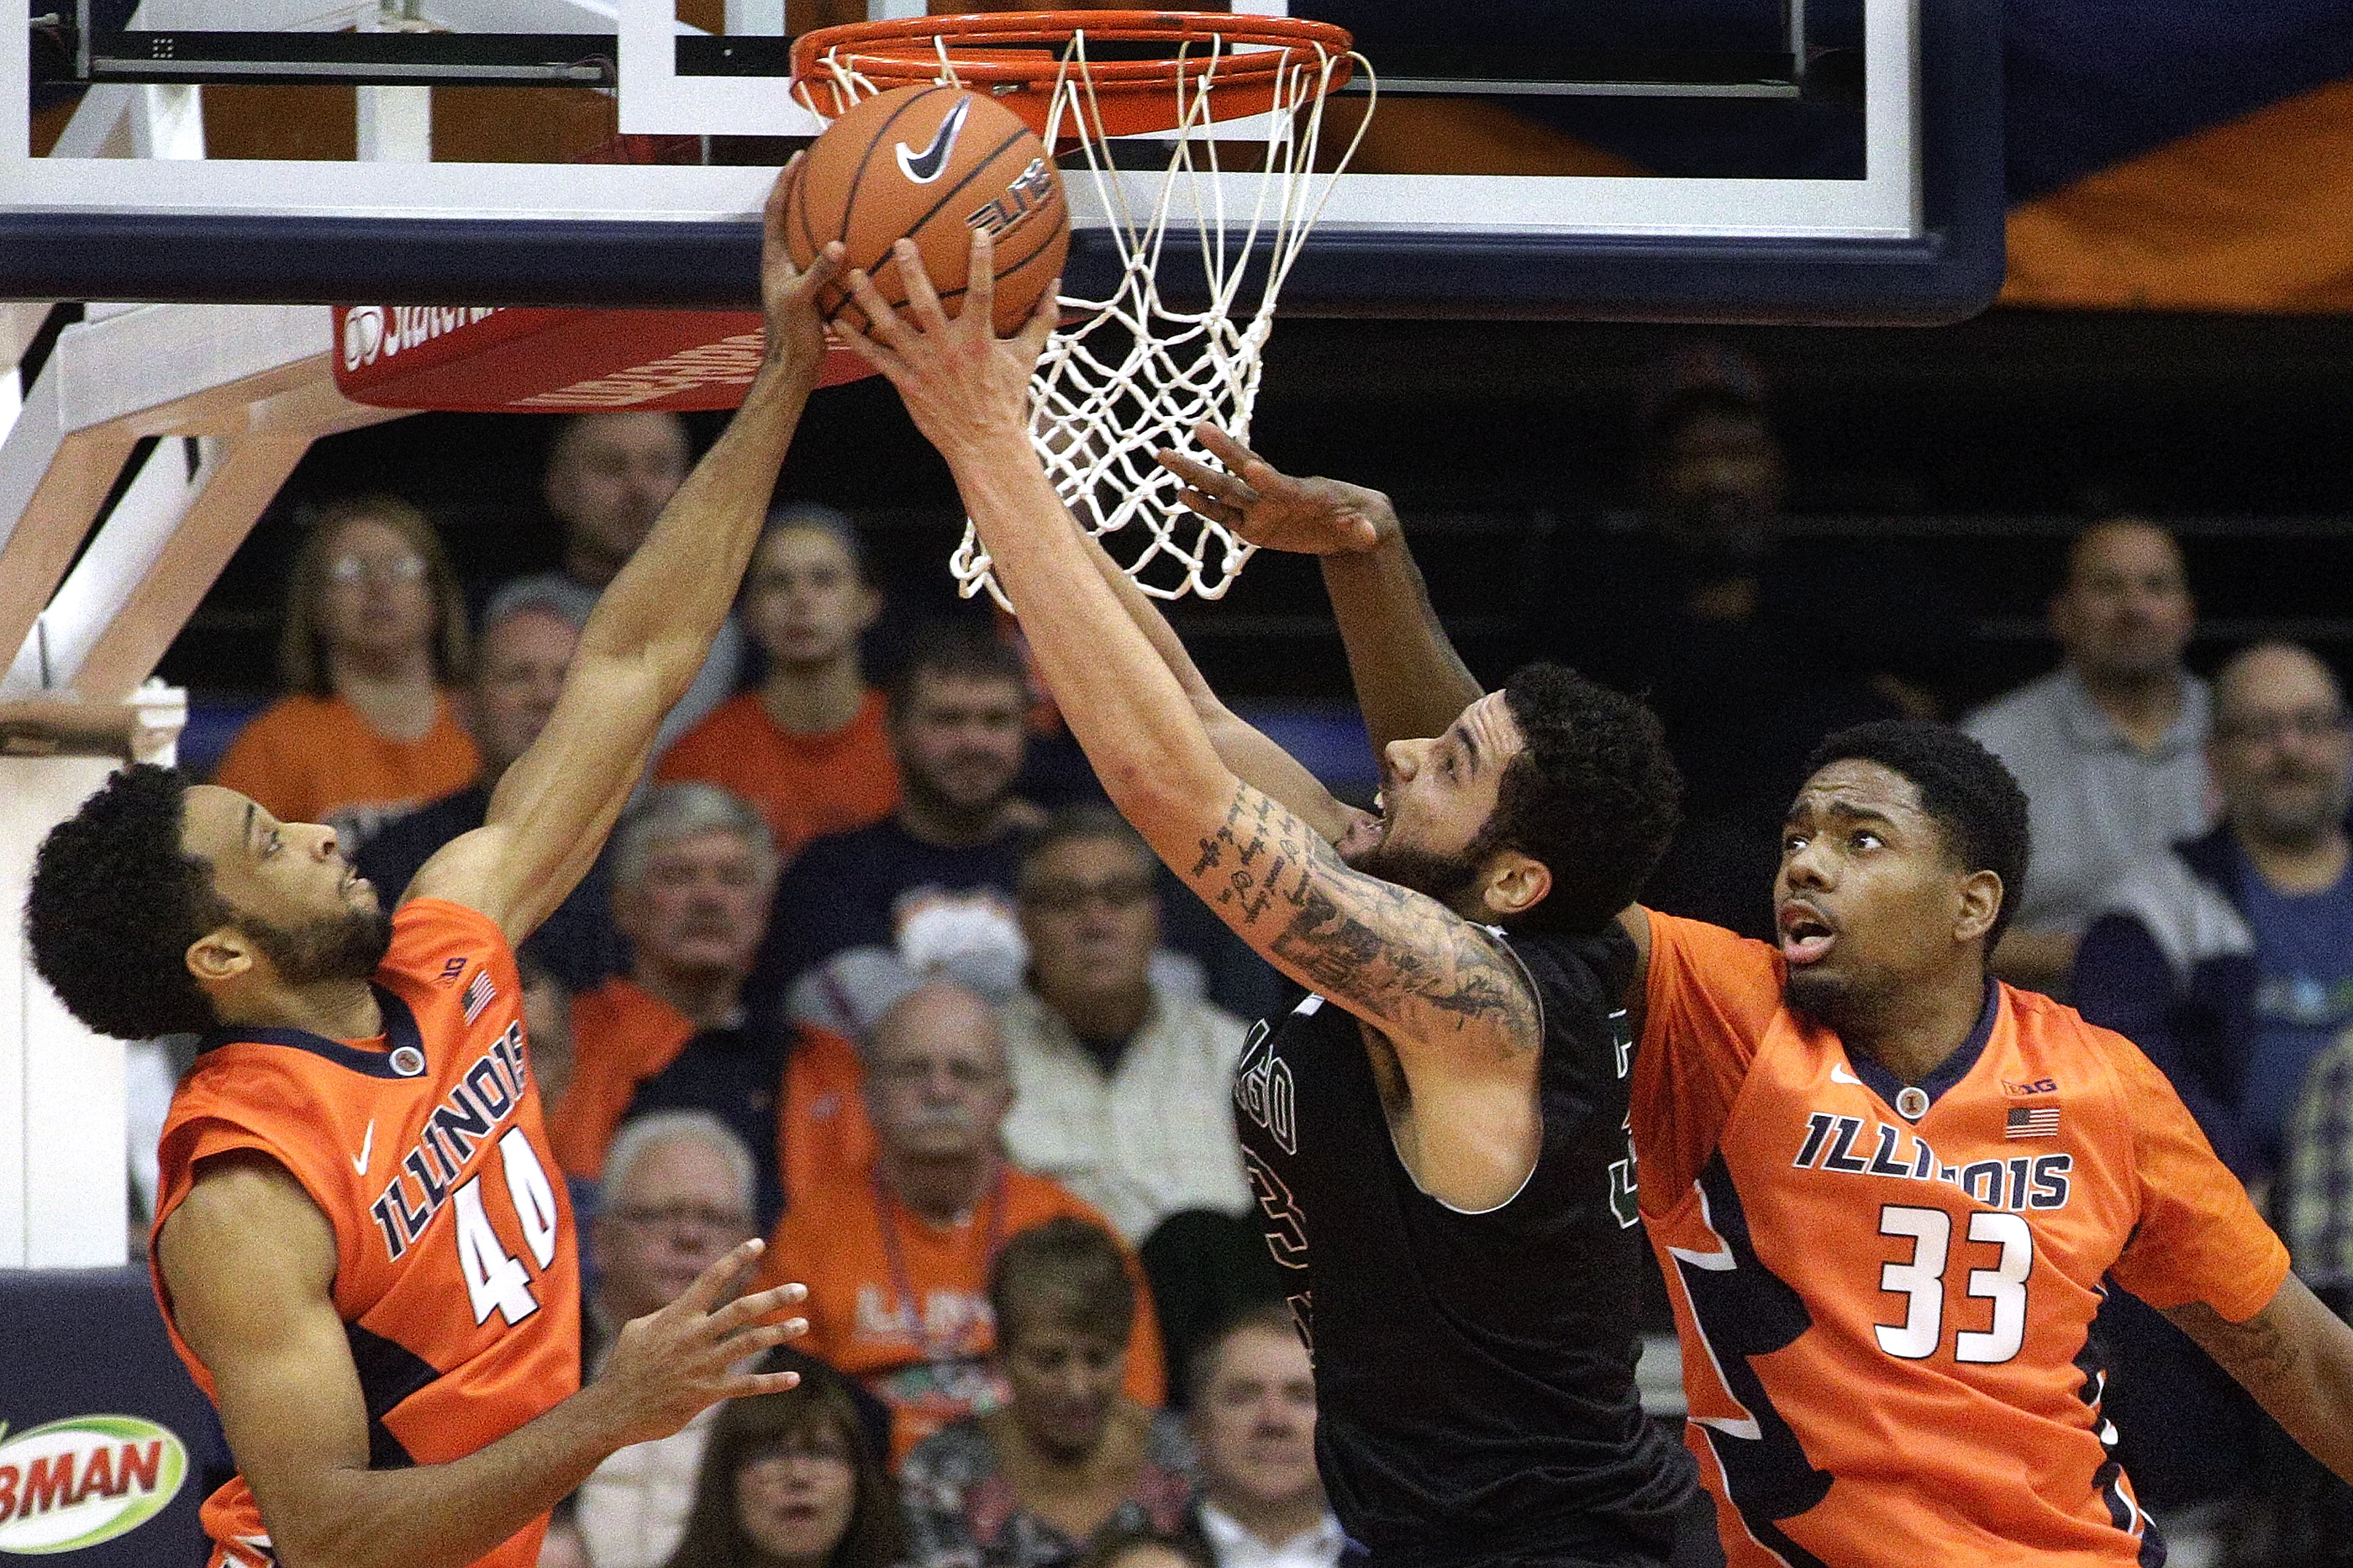 Chicago State forward Jordan Madrid-Andrews, center, goes to the basket against Illinois guard Alex Austin, left, and Illinois forward Mike Thorne Jr. (33) during the first half of an NCAA  college basketball game at the Prairie Capital Convention Center,